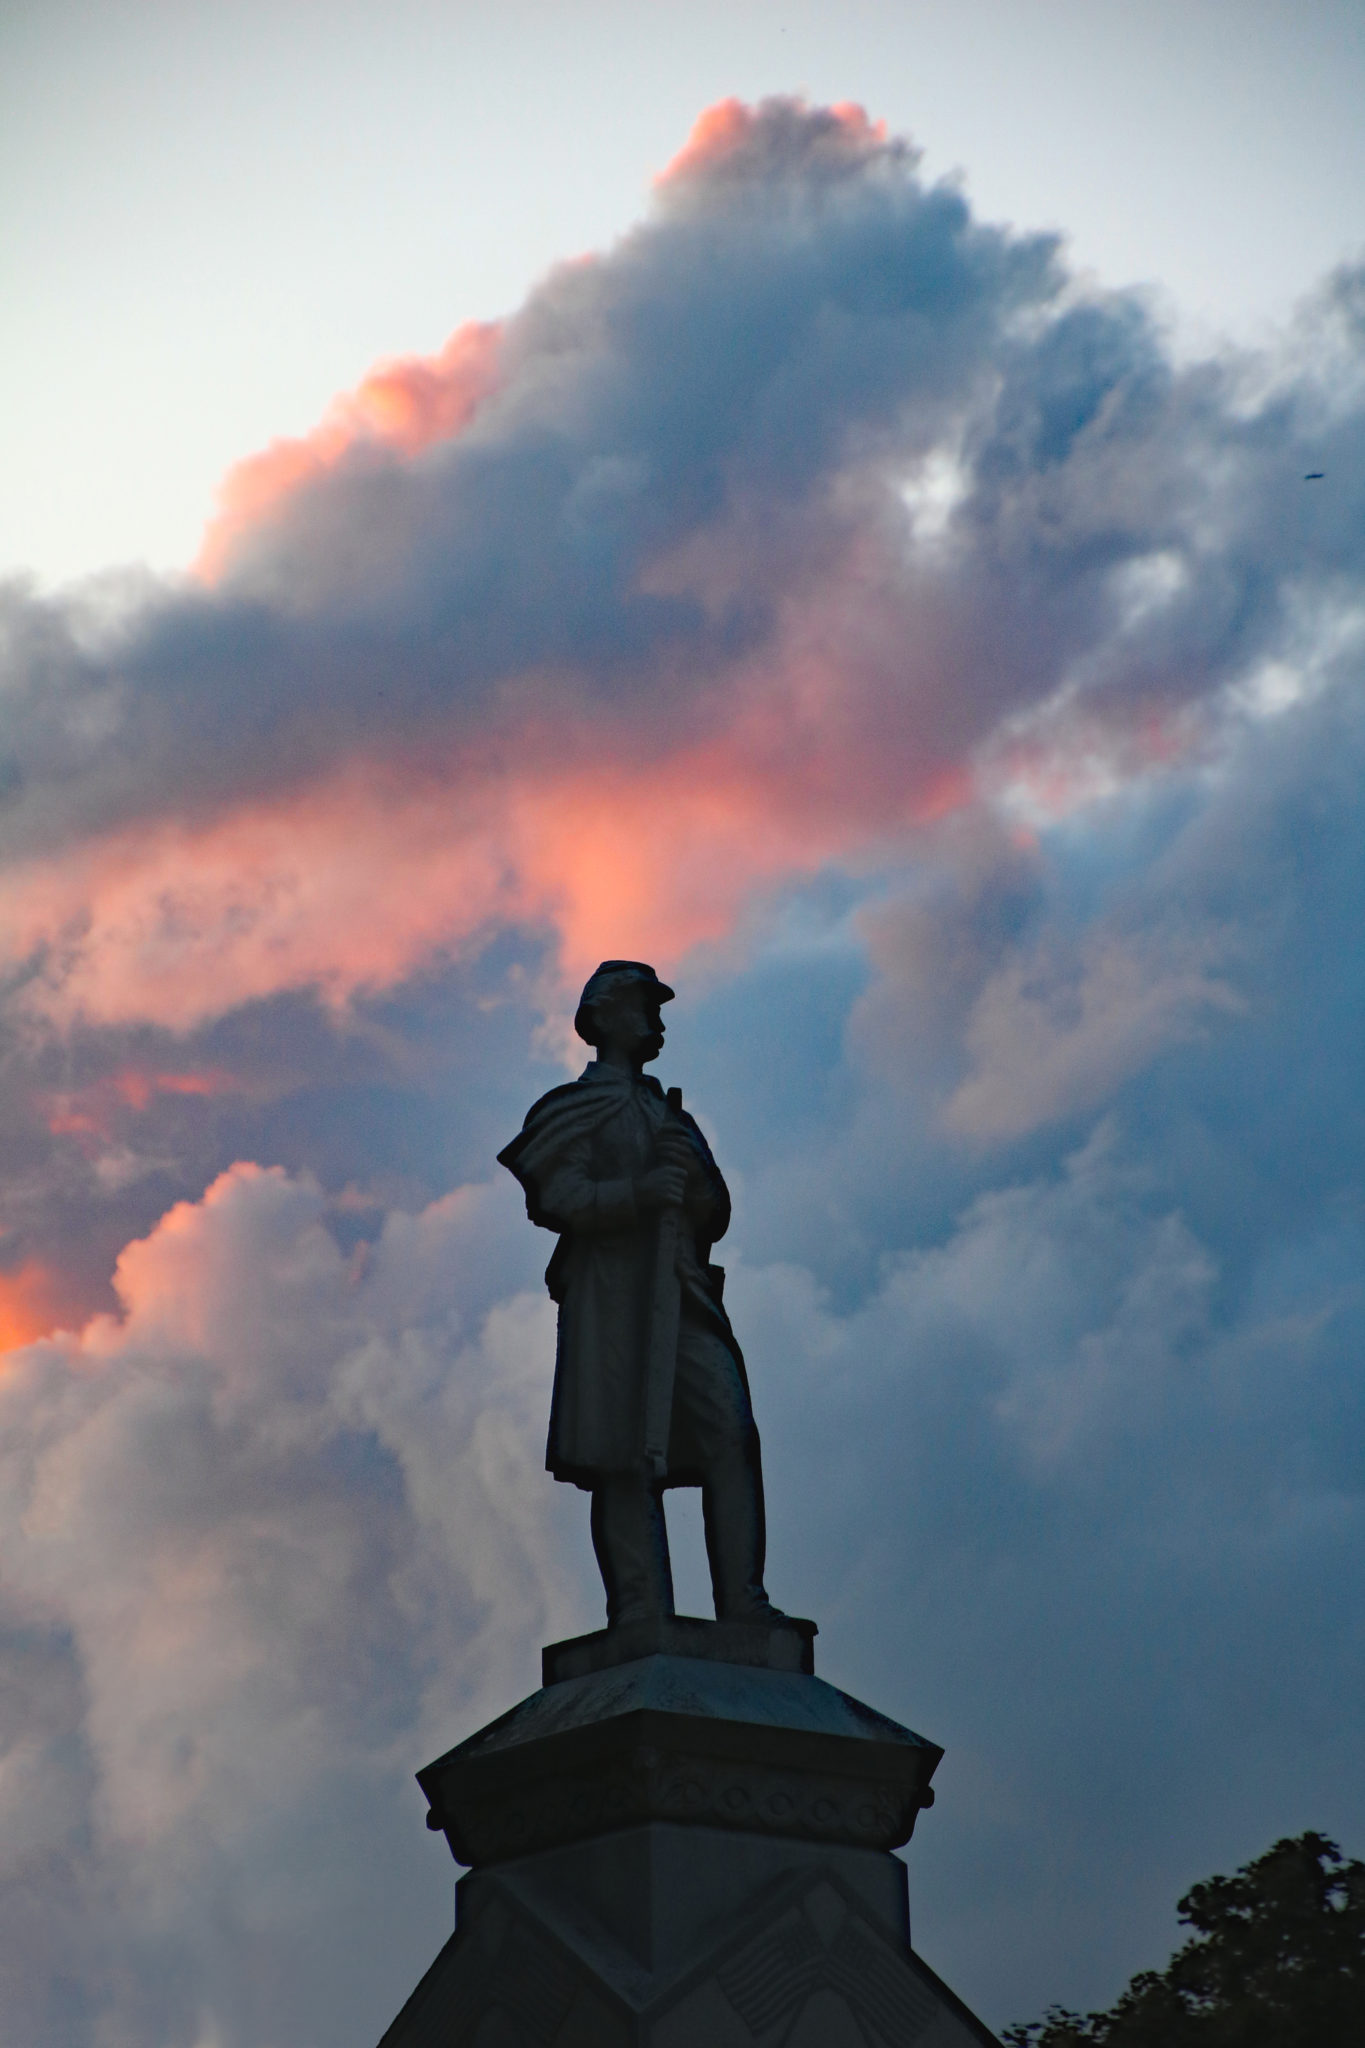 The Soldiers Monument at dusk